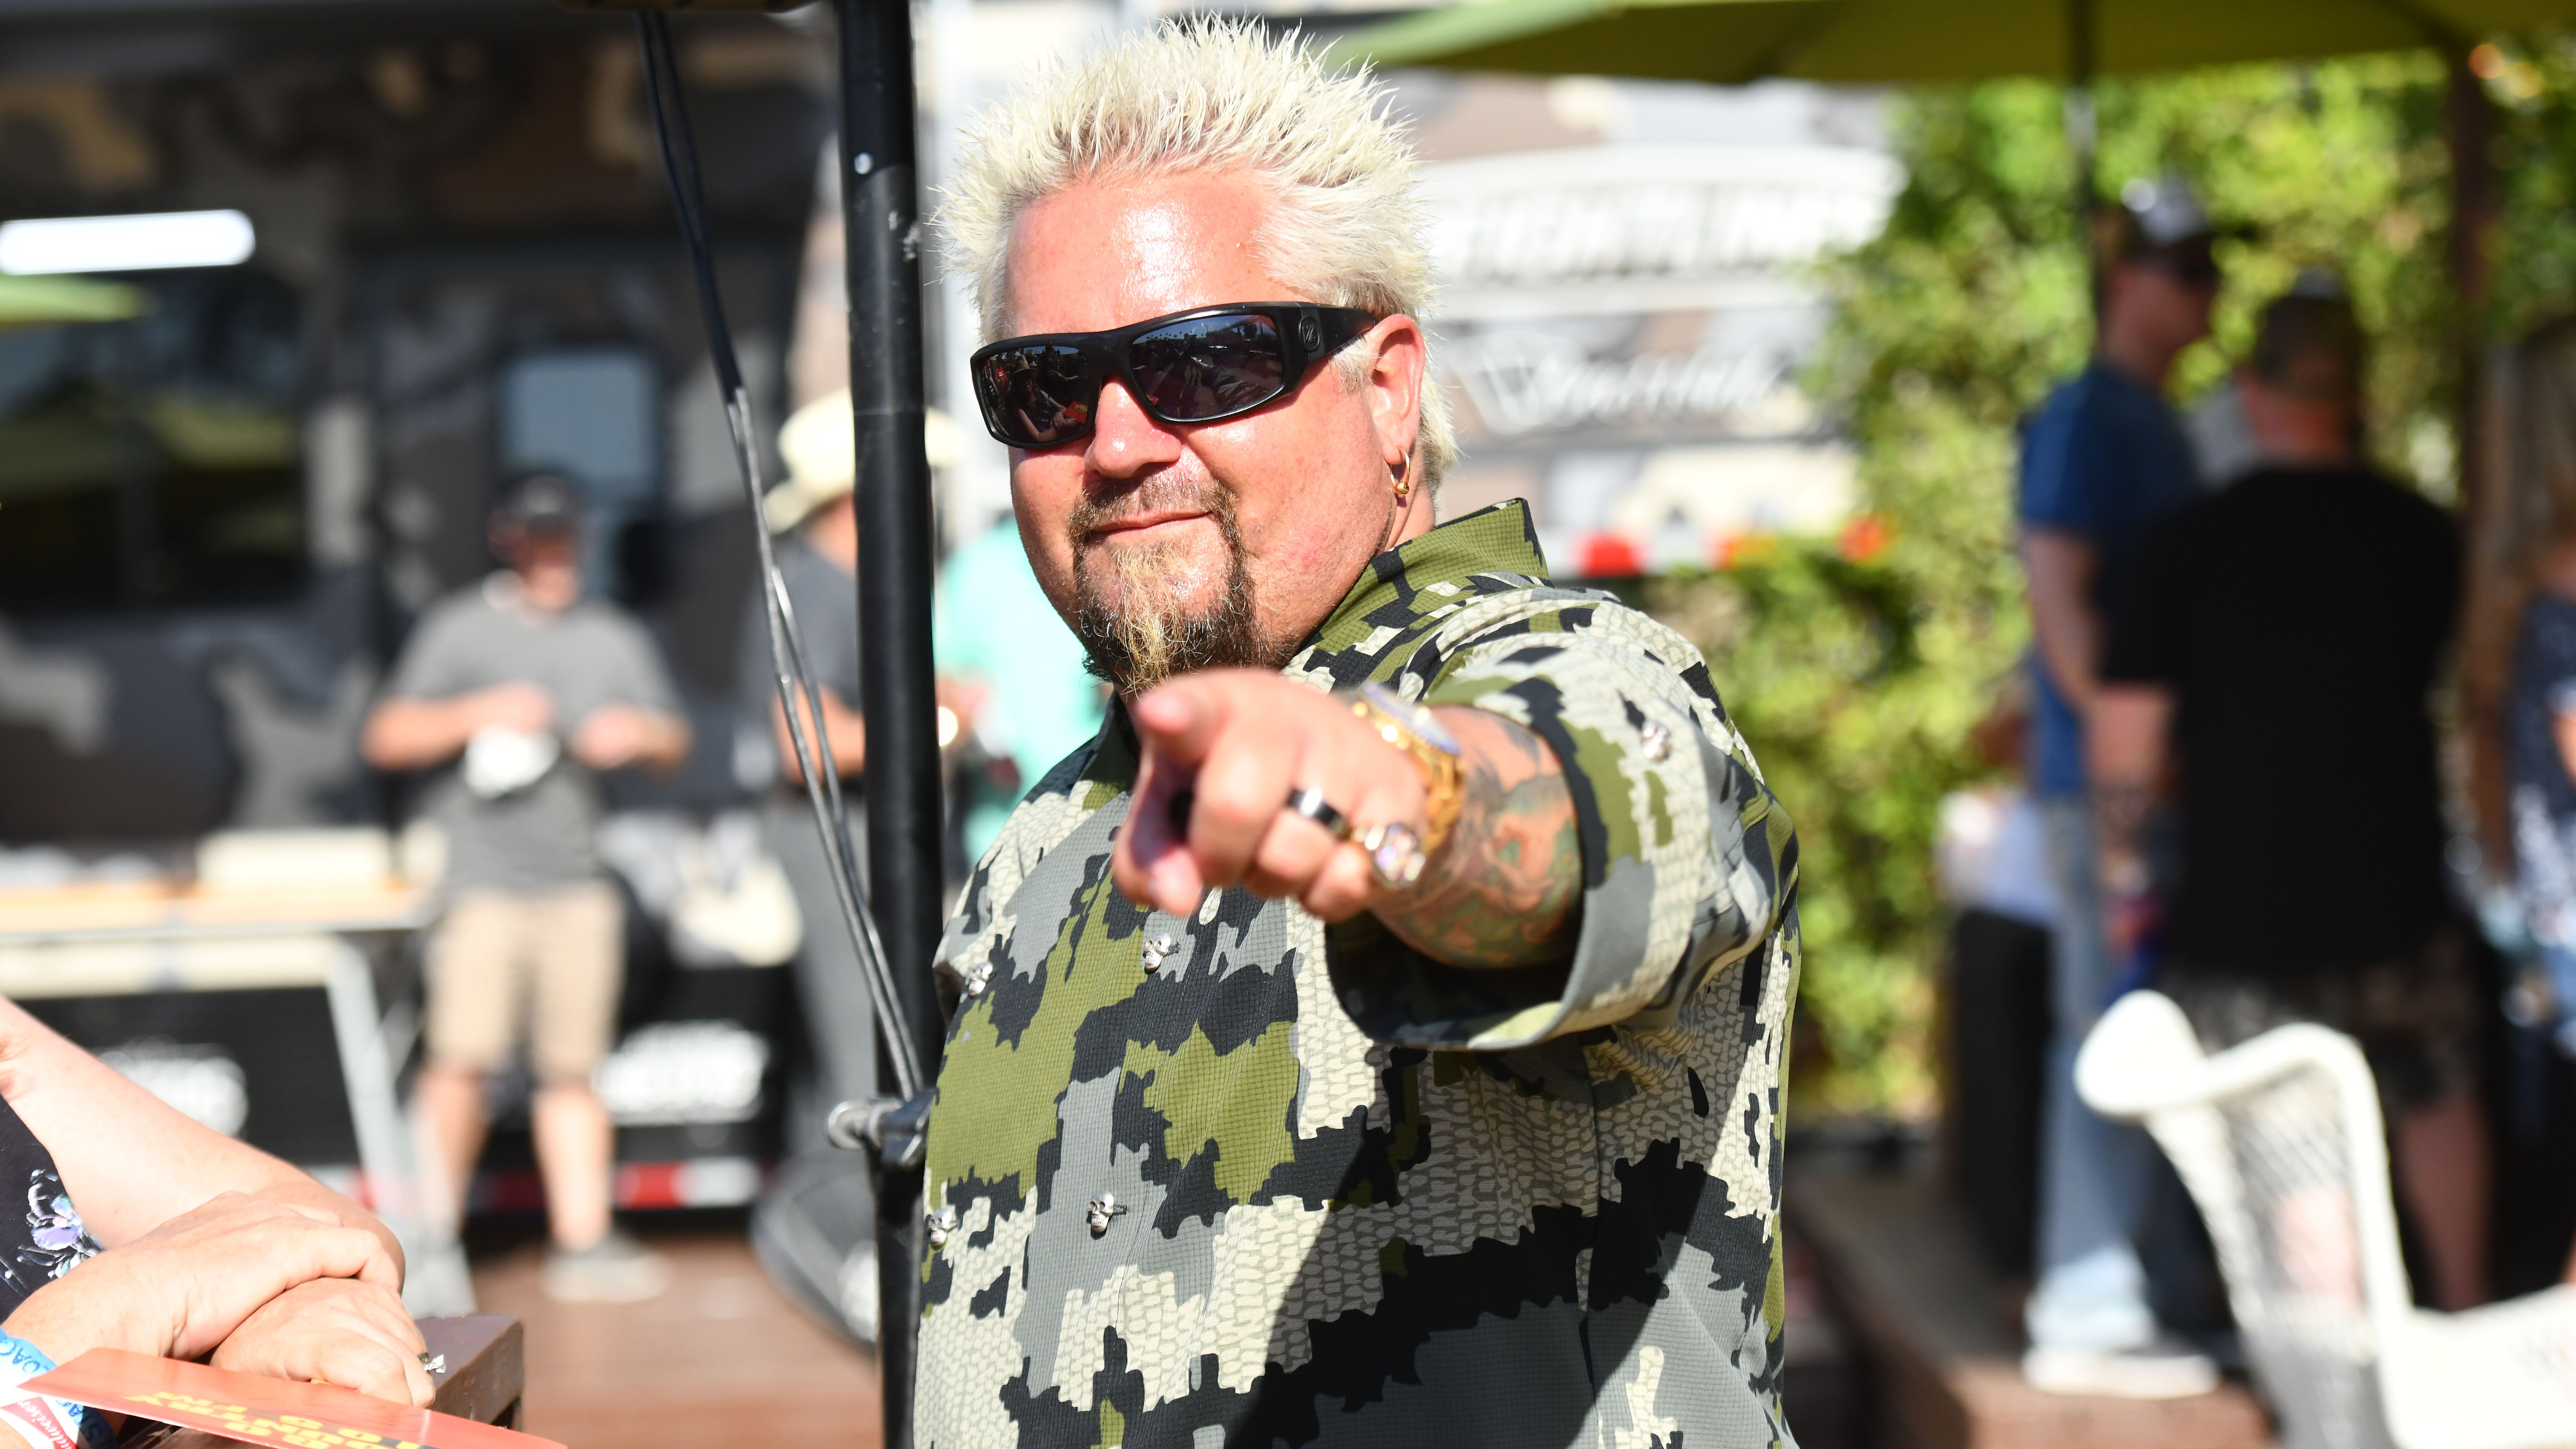 Westlake Legal Group Guy-Fieri Guy Fieri unveils 'Baby Yoda' mashup Michael Hollan fox-news/food-drink/food/celebrity-chefs fox news fnc/food-drink fnc article a7c9f9f7-ba79-5ee6-b35f-7423d3f0f39b